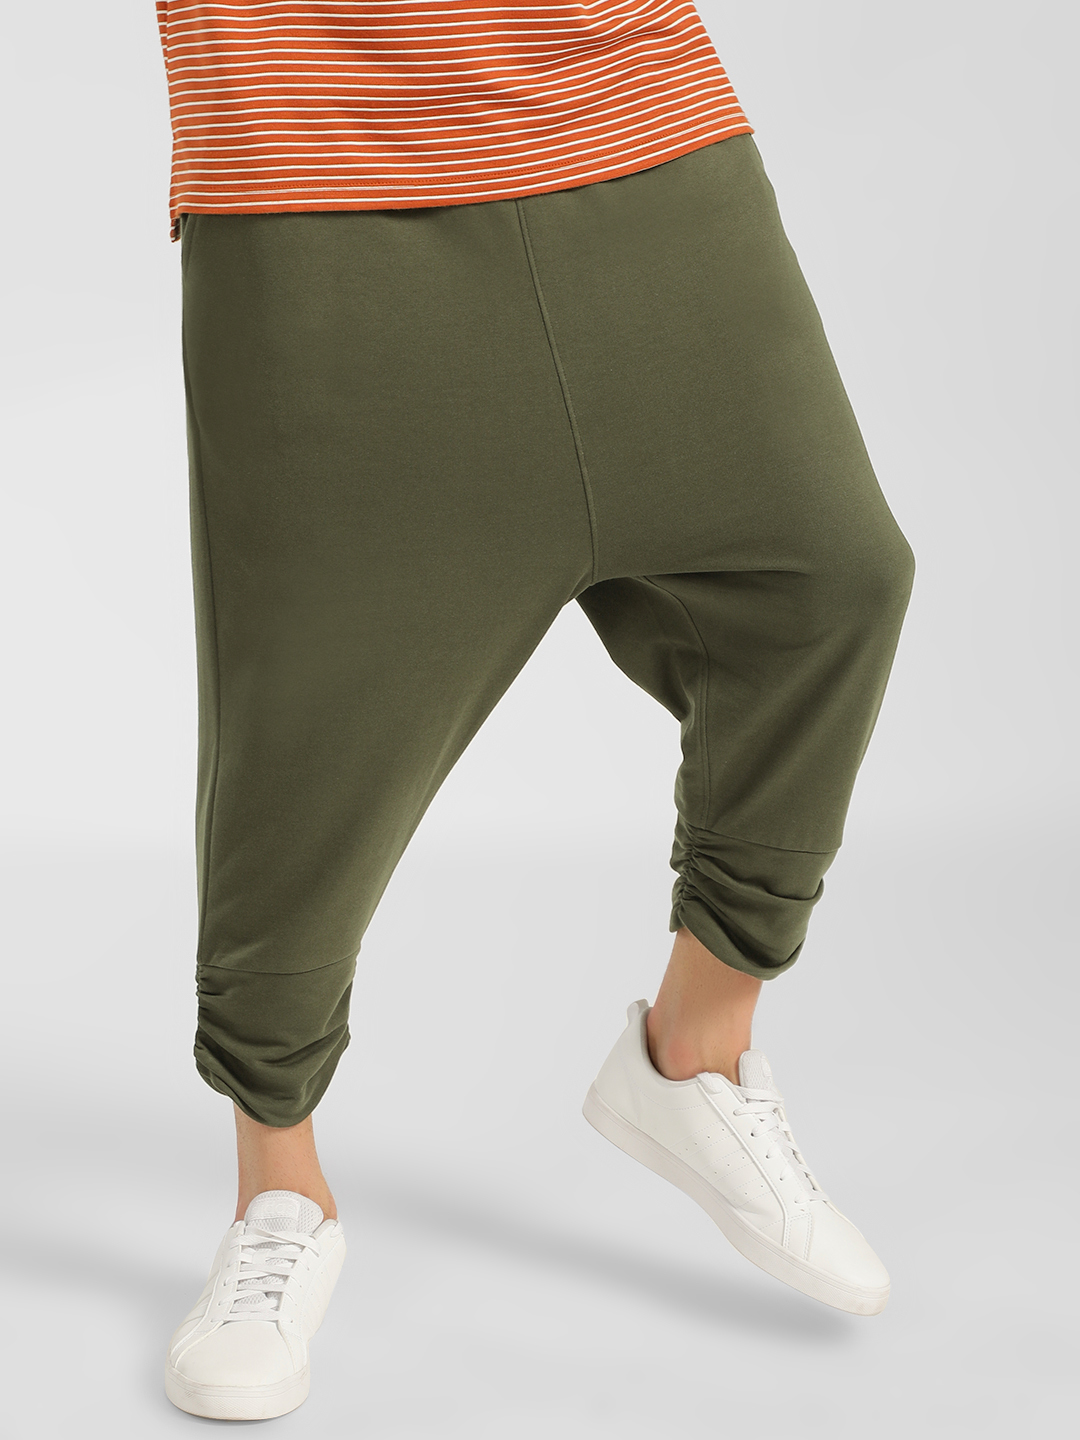 SKULT By Shahid Kapoor Olive Drop Crotch Joggers 1